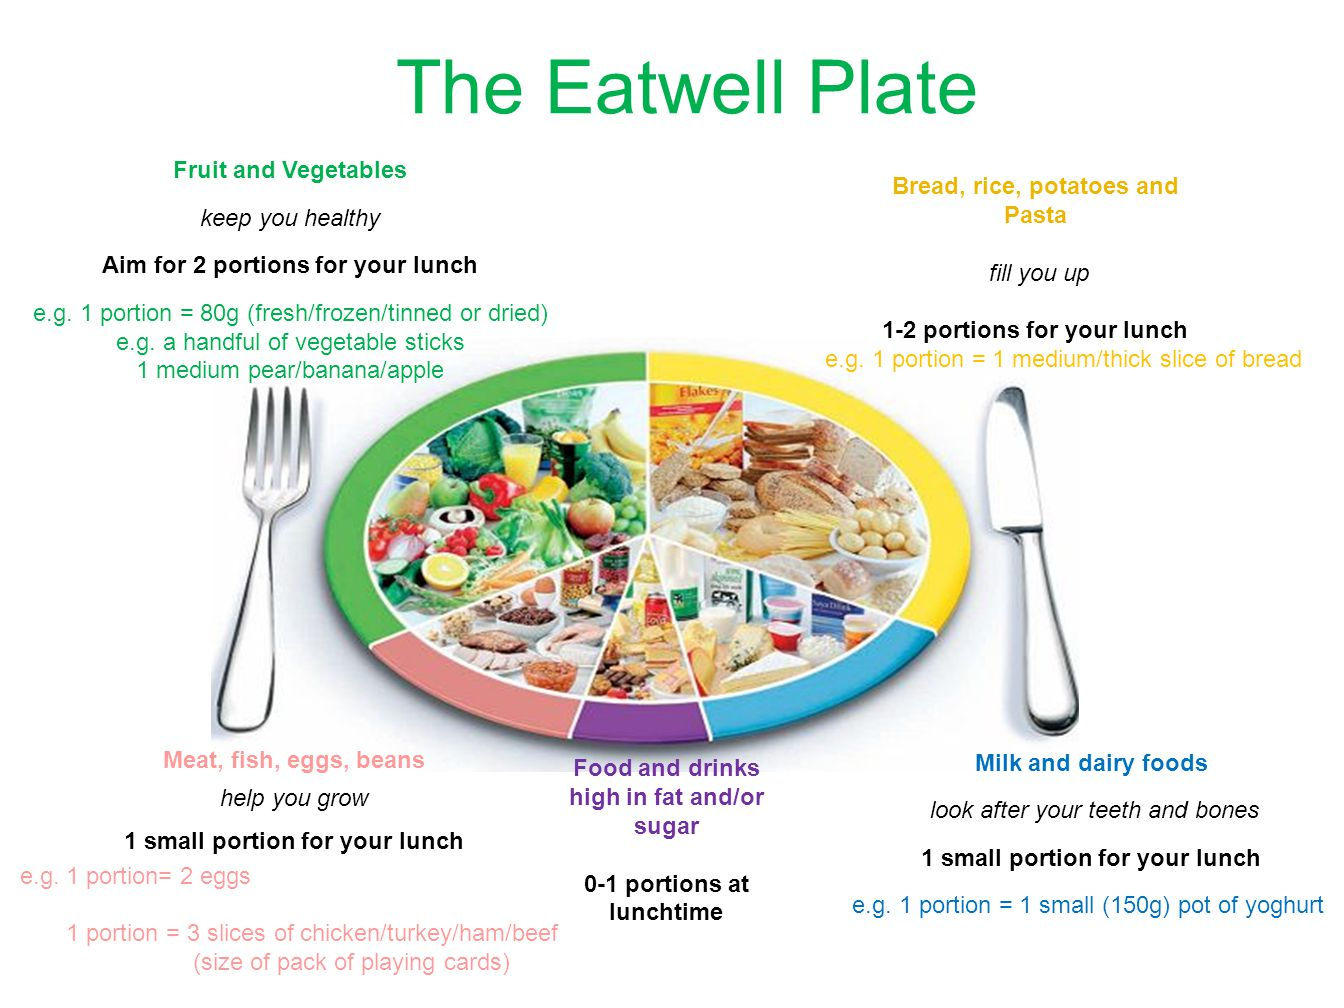 Fruit And Vegetables Keep You Healthy Aim For 2 Portions For Your Lunch E G